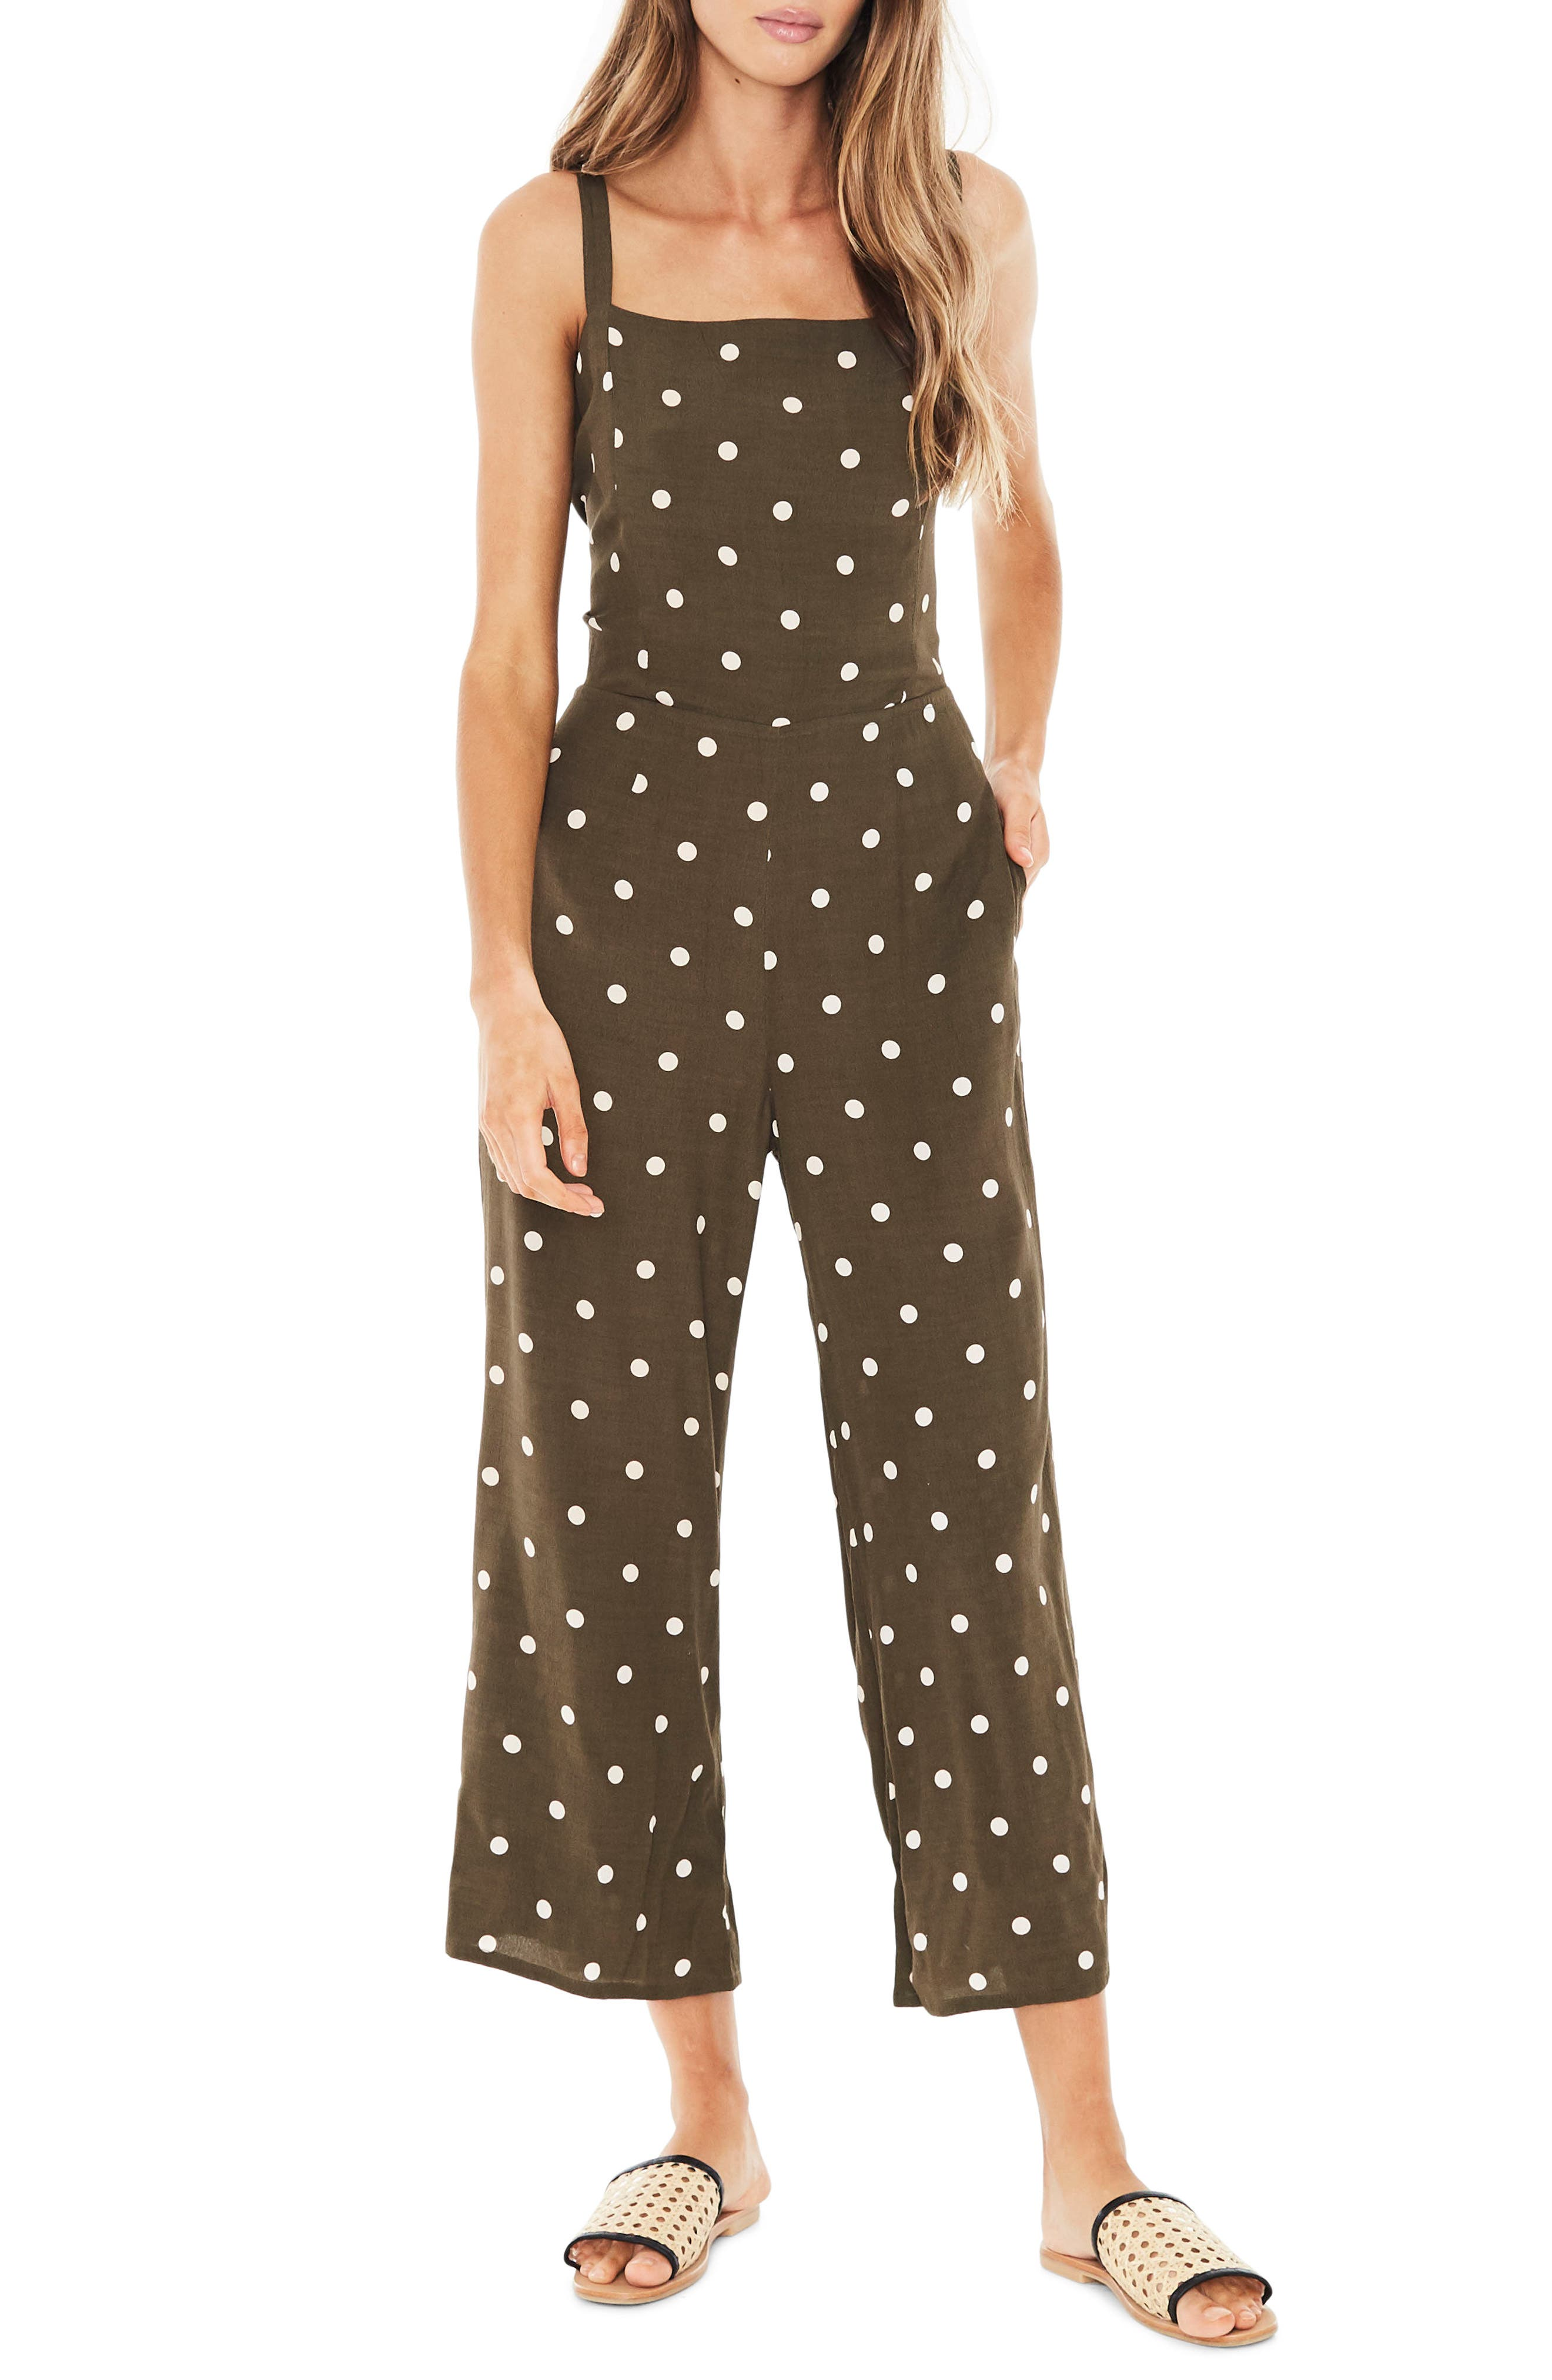 Playa Polka Dot Jumpsuit,                             Main thumbnail 1, color,                             200